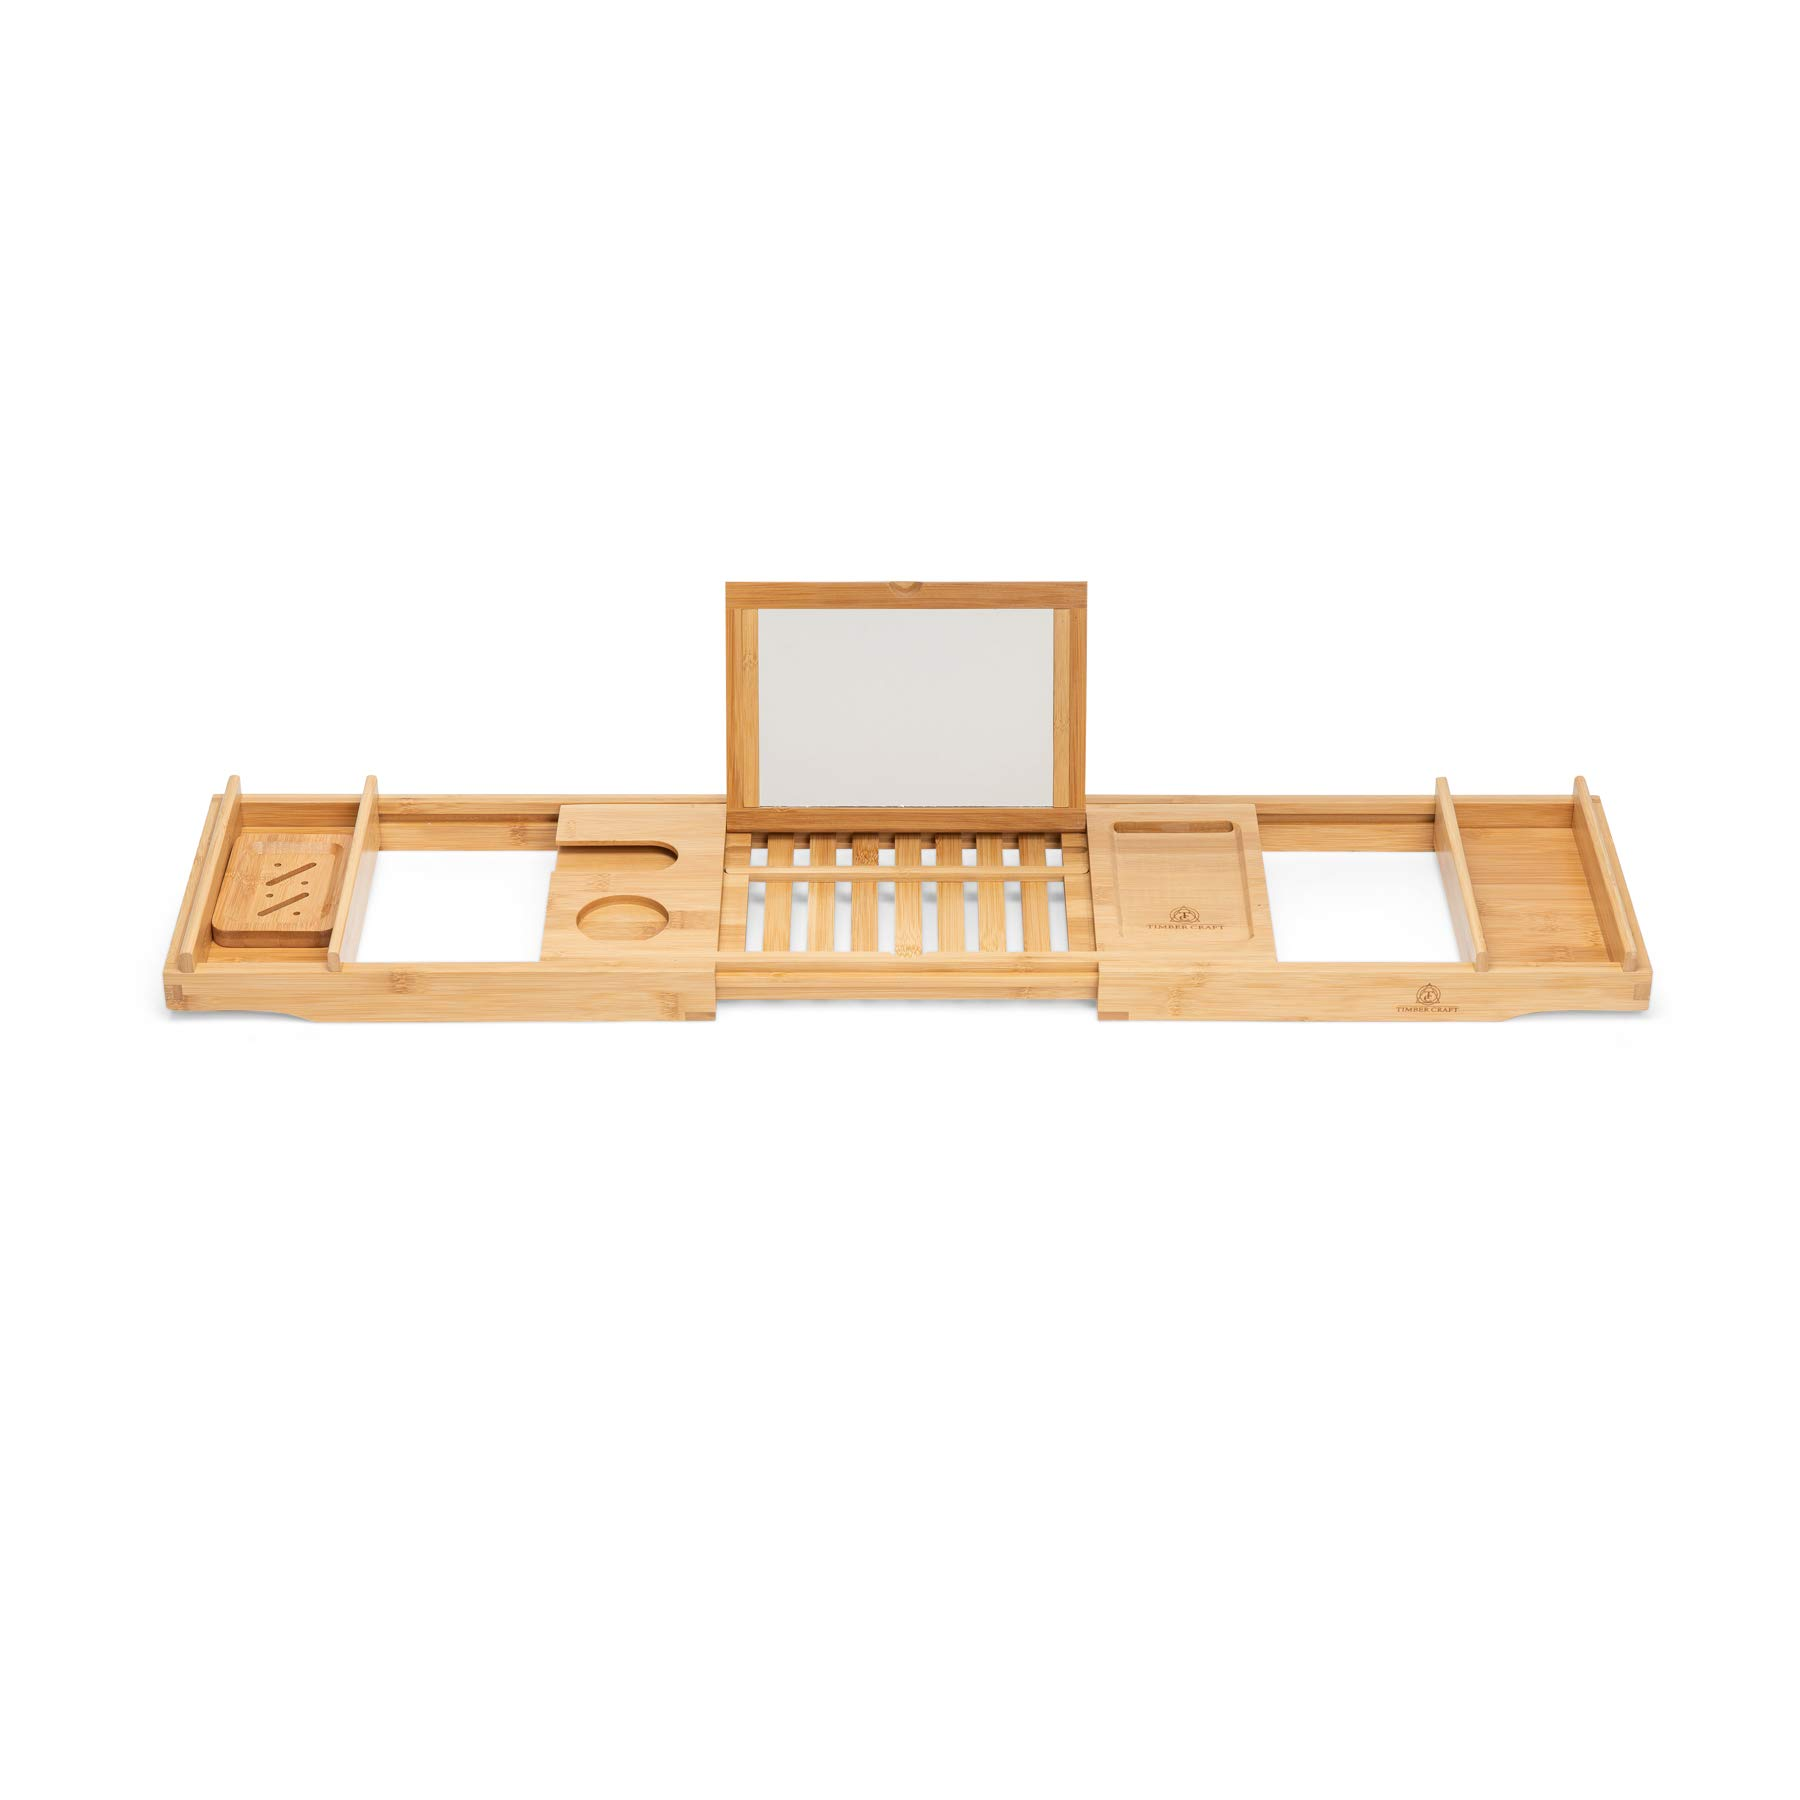 Timbercraft Premium Bamboo Bathtub Caddy Tray with Mirror & Free Soap Dish - Supreme Luxury - Water & Mildew Resistant by Timbercraft (Image #4)